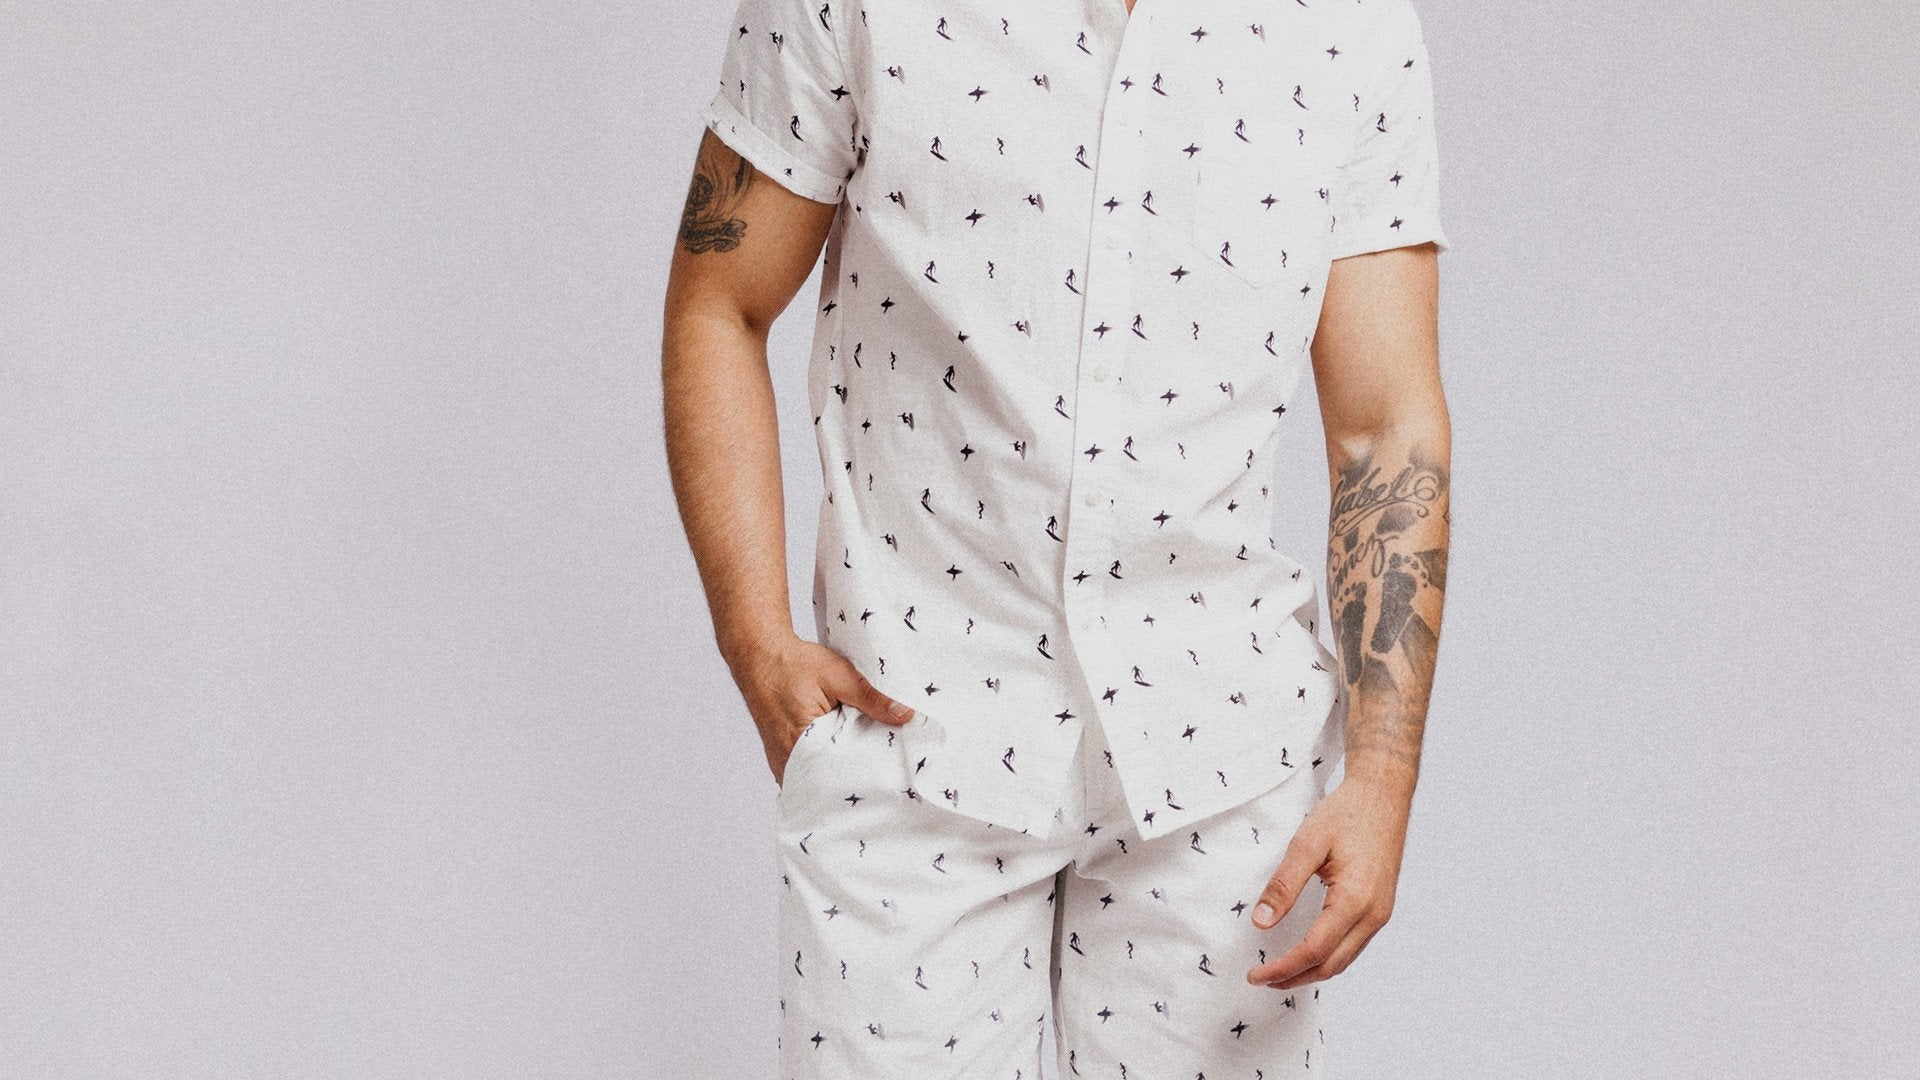 Curious About Male Rompers? Stop. Try This Instead.